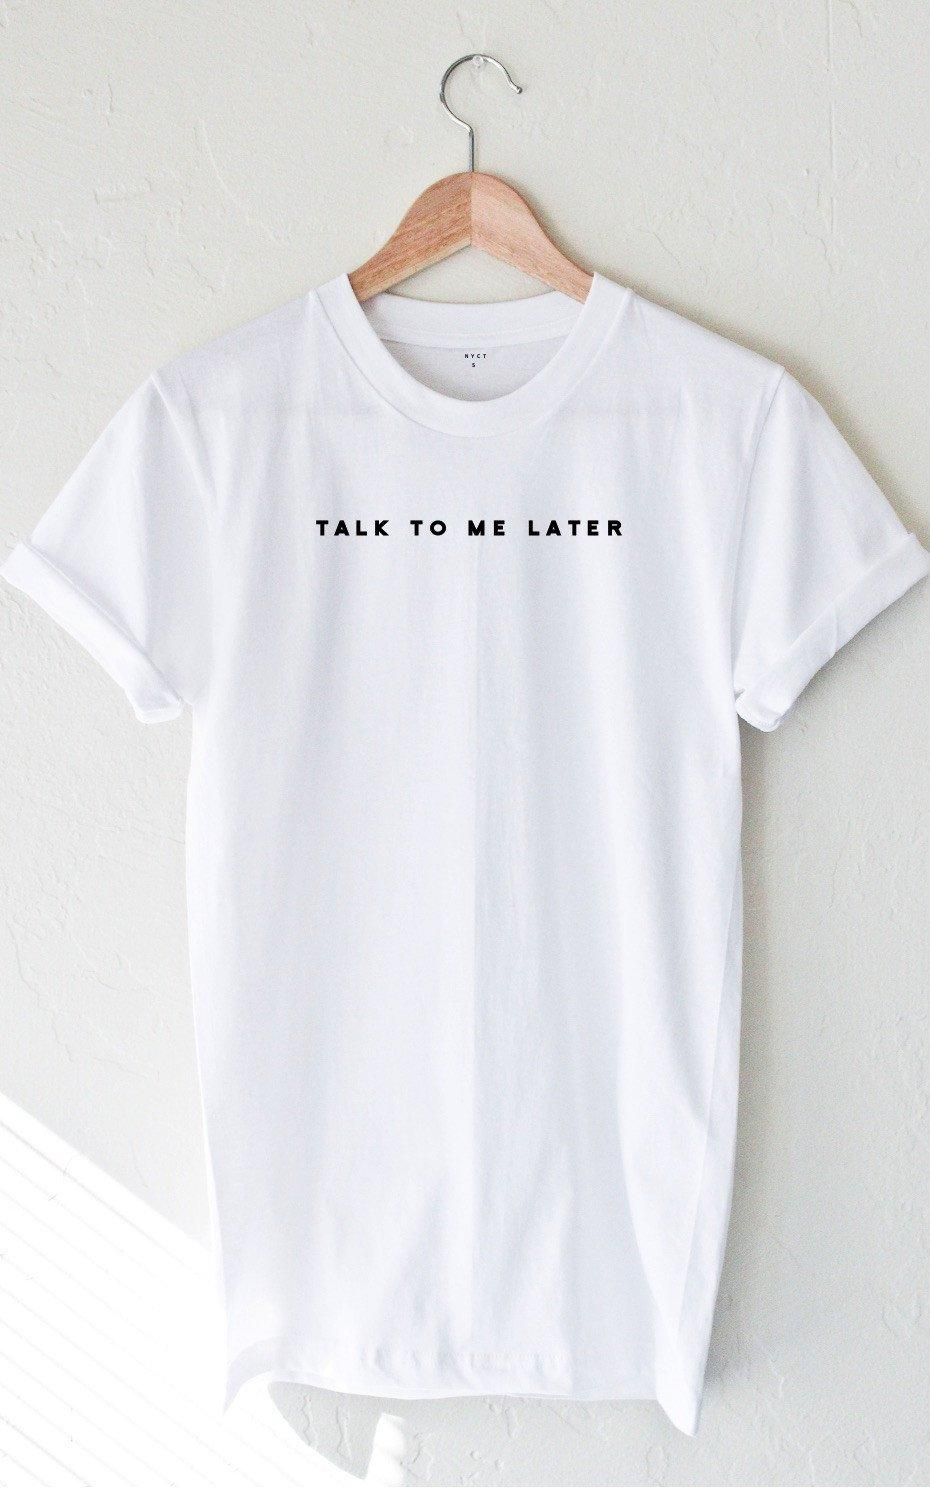 Image of Talk To Me Later T-shirt - White